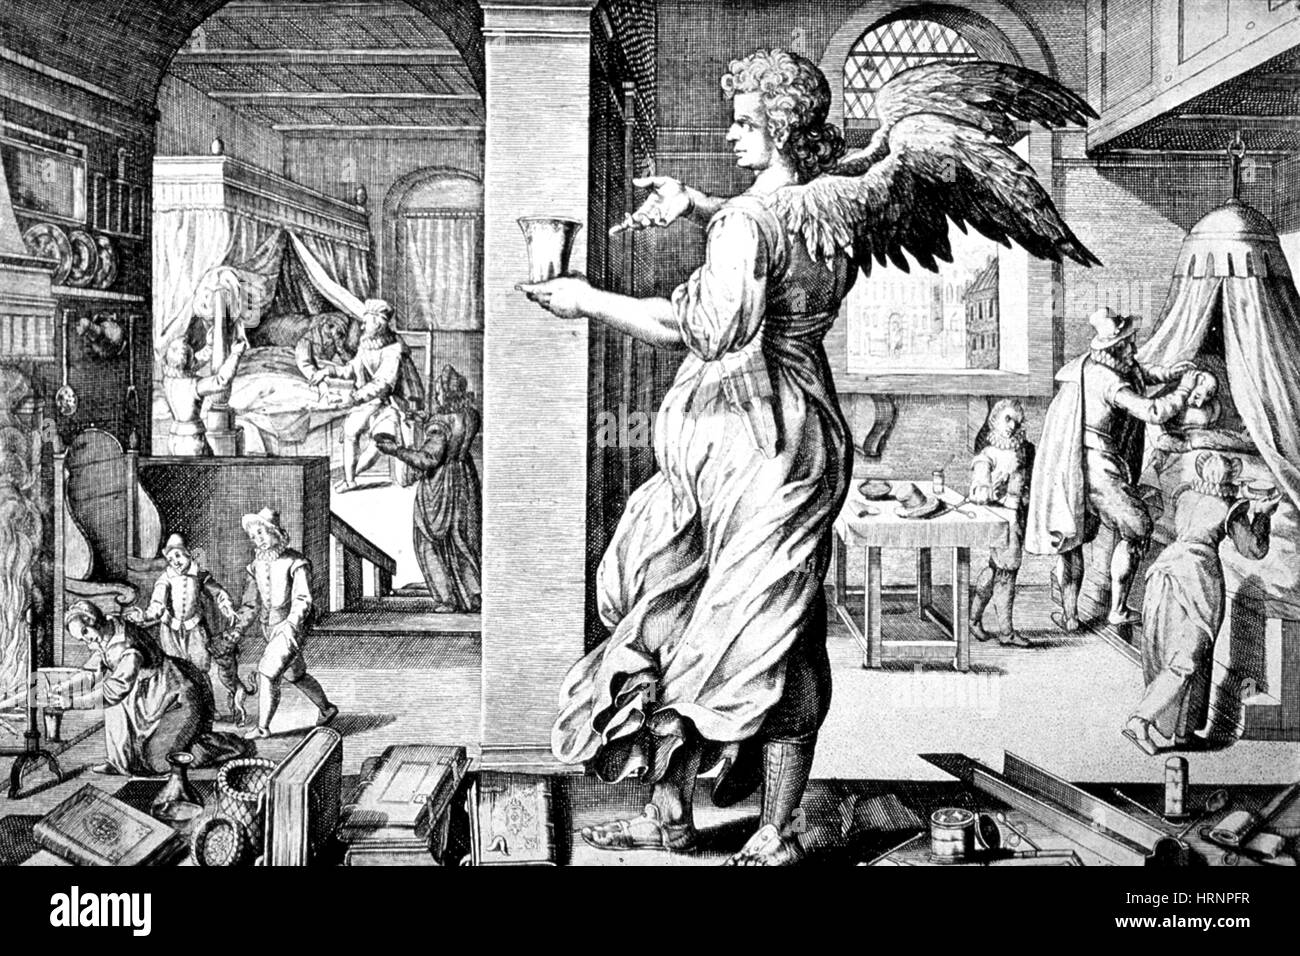 Physician As Angel, 17th Century - Stock Image